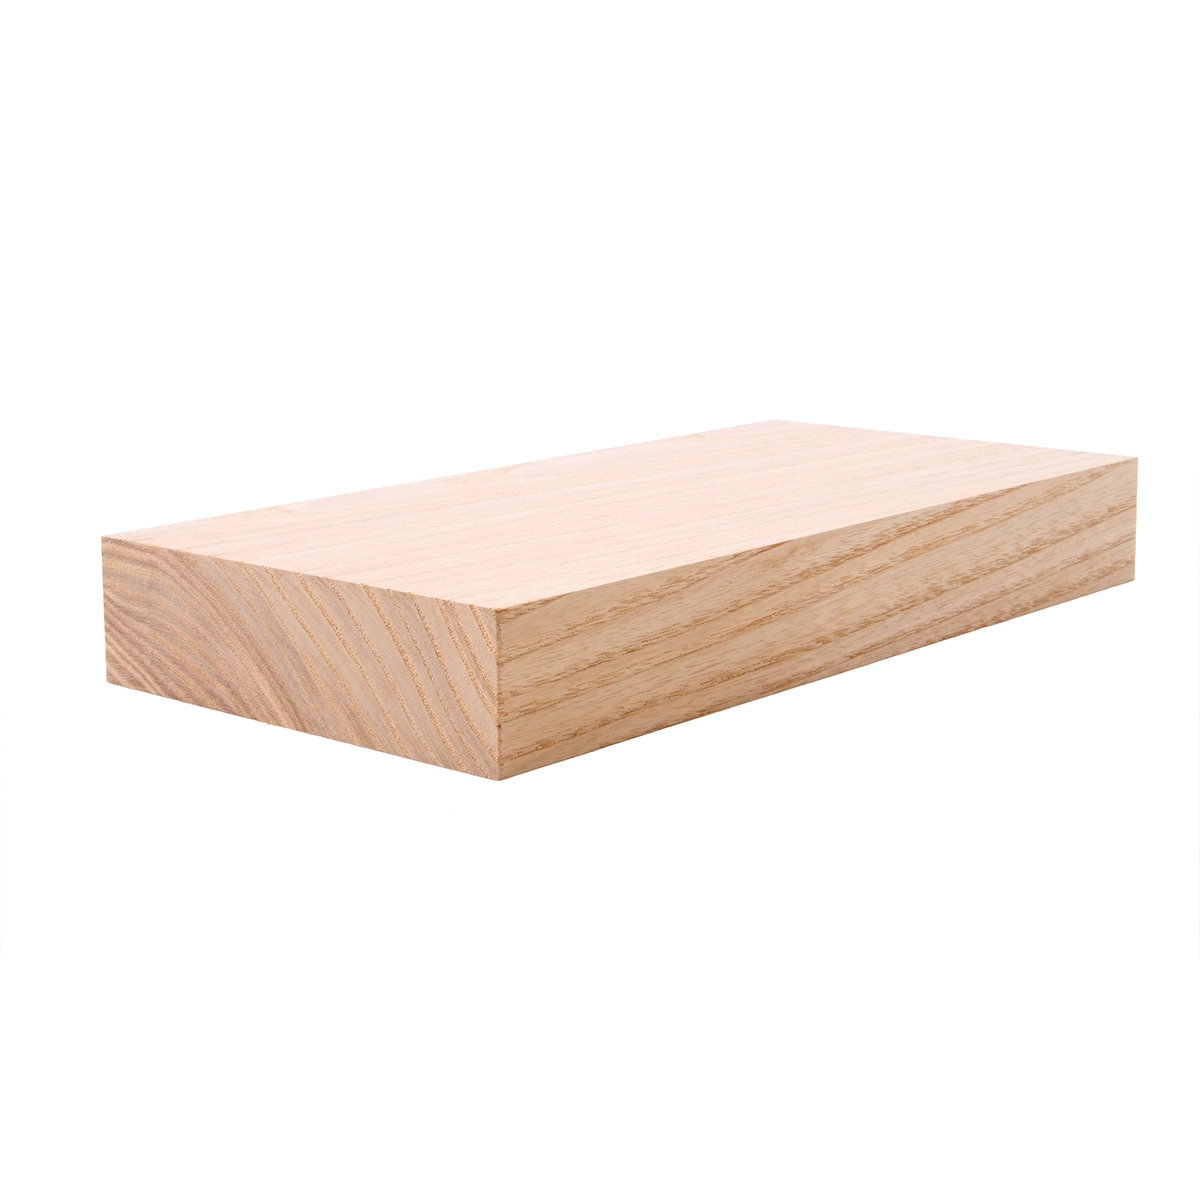 2x6 1 1 2 x 5 1 2 ash s4s lumber boards flat stock for What is a 2x6